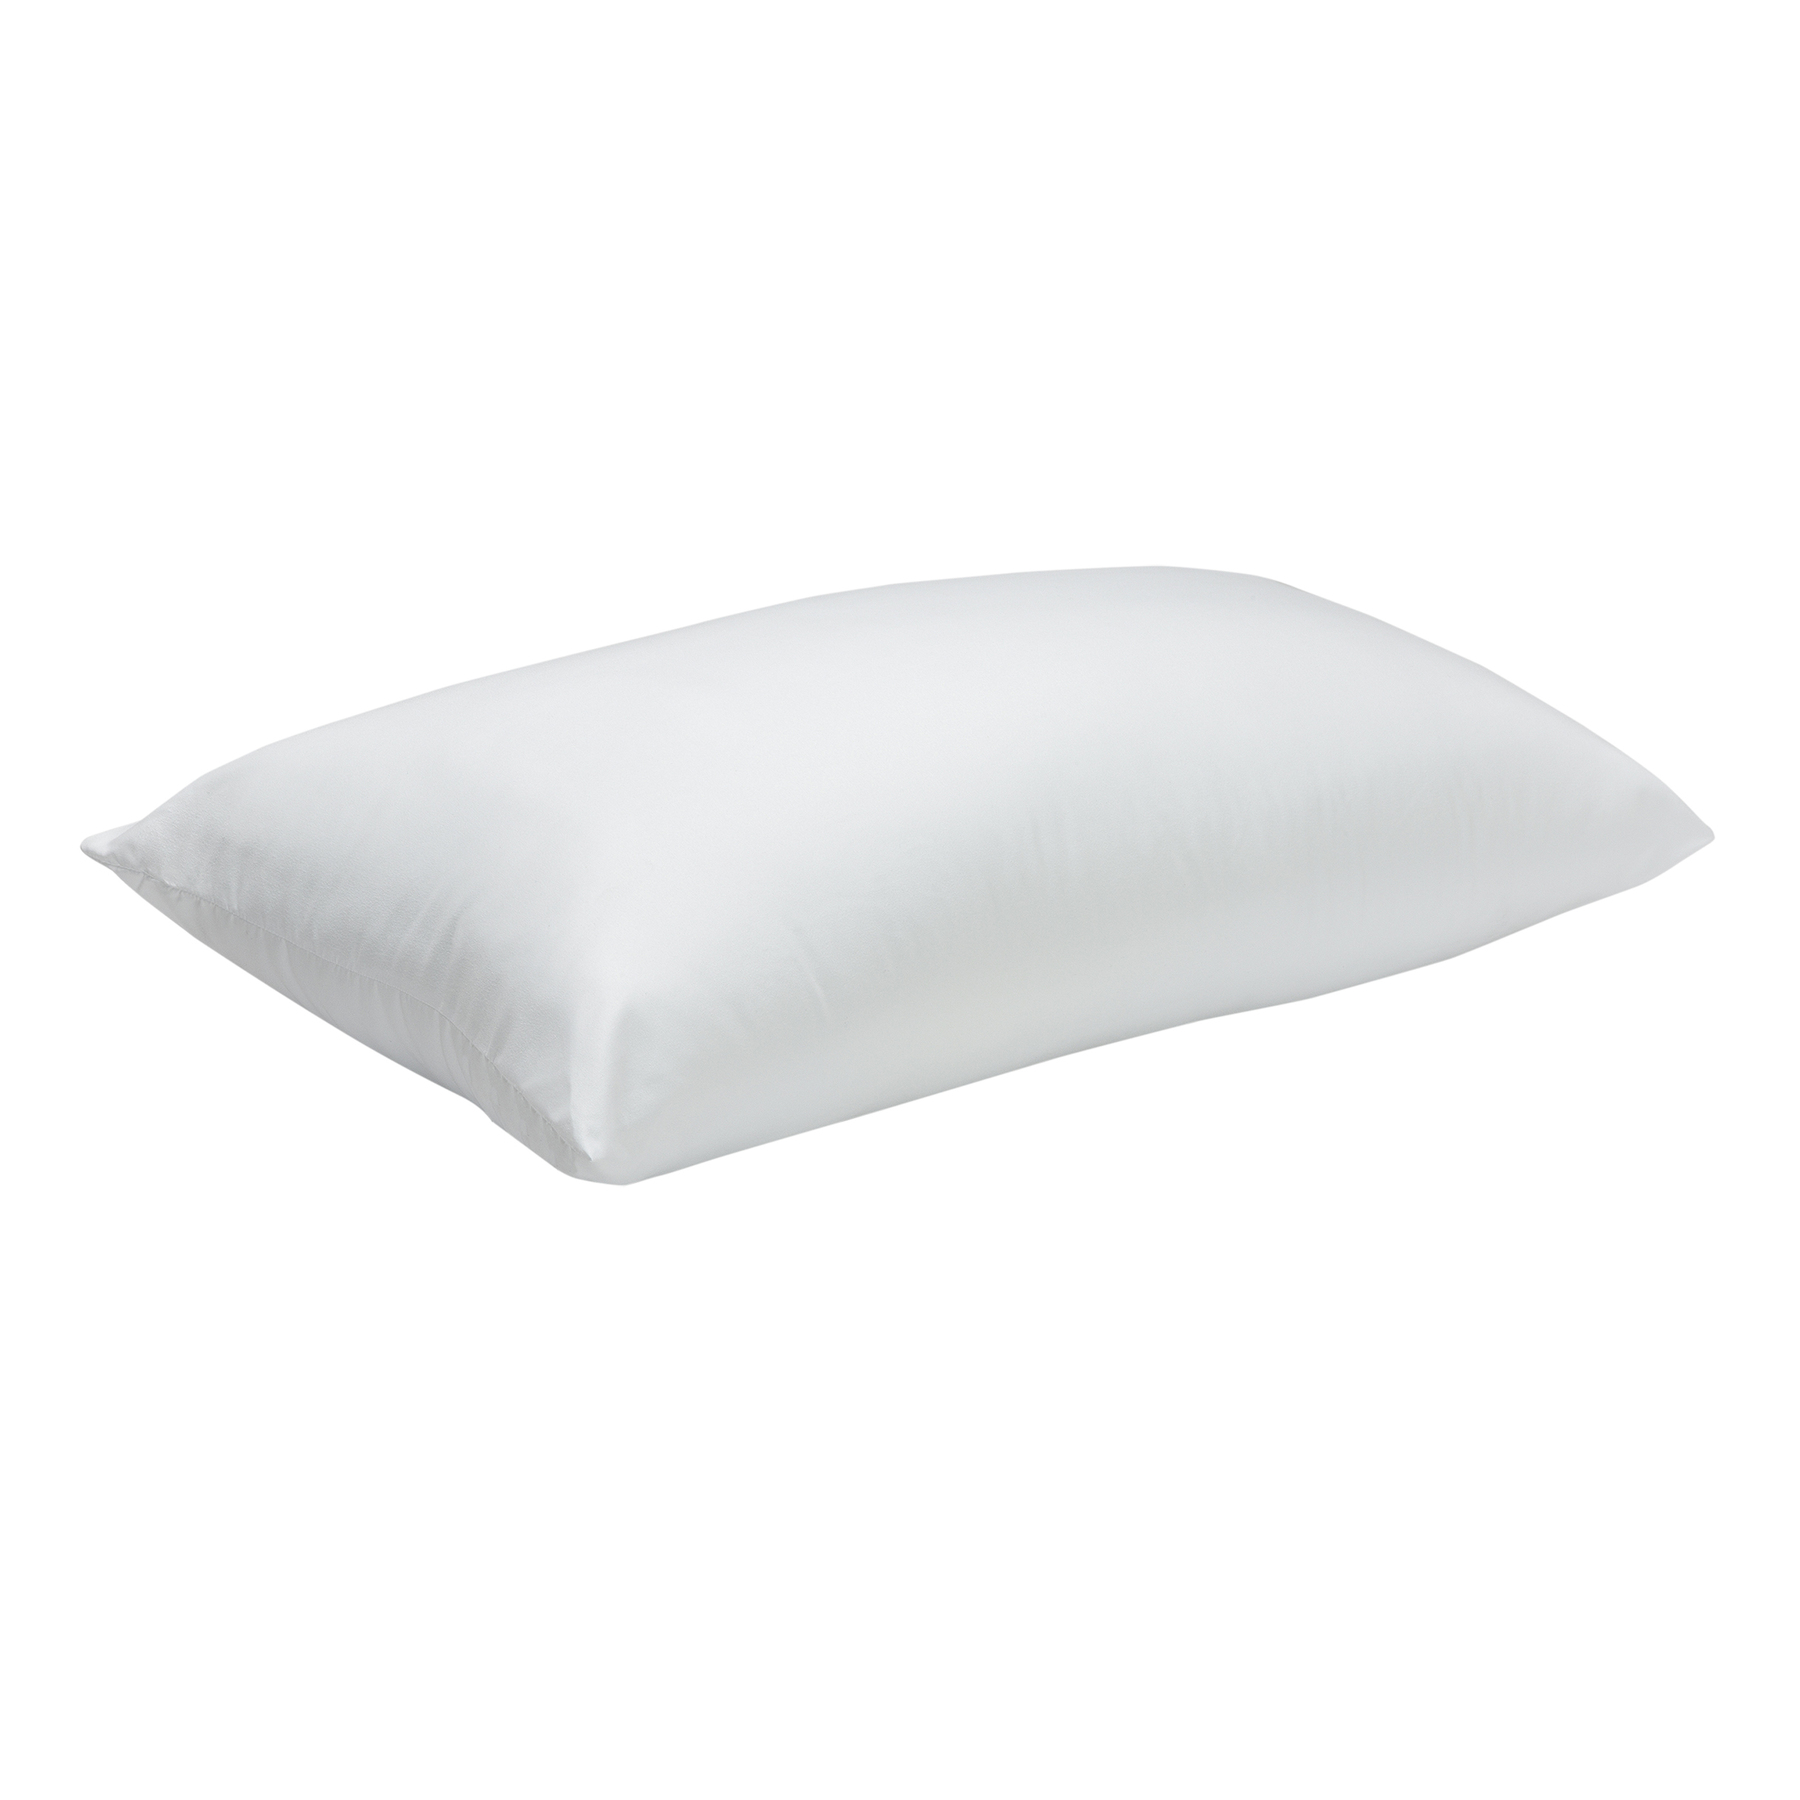 Pikolin Home-free Fiber Pillow Car With Aloe Vera.